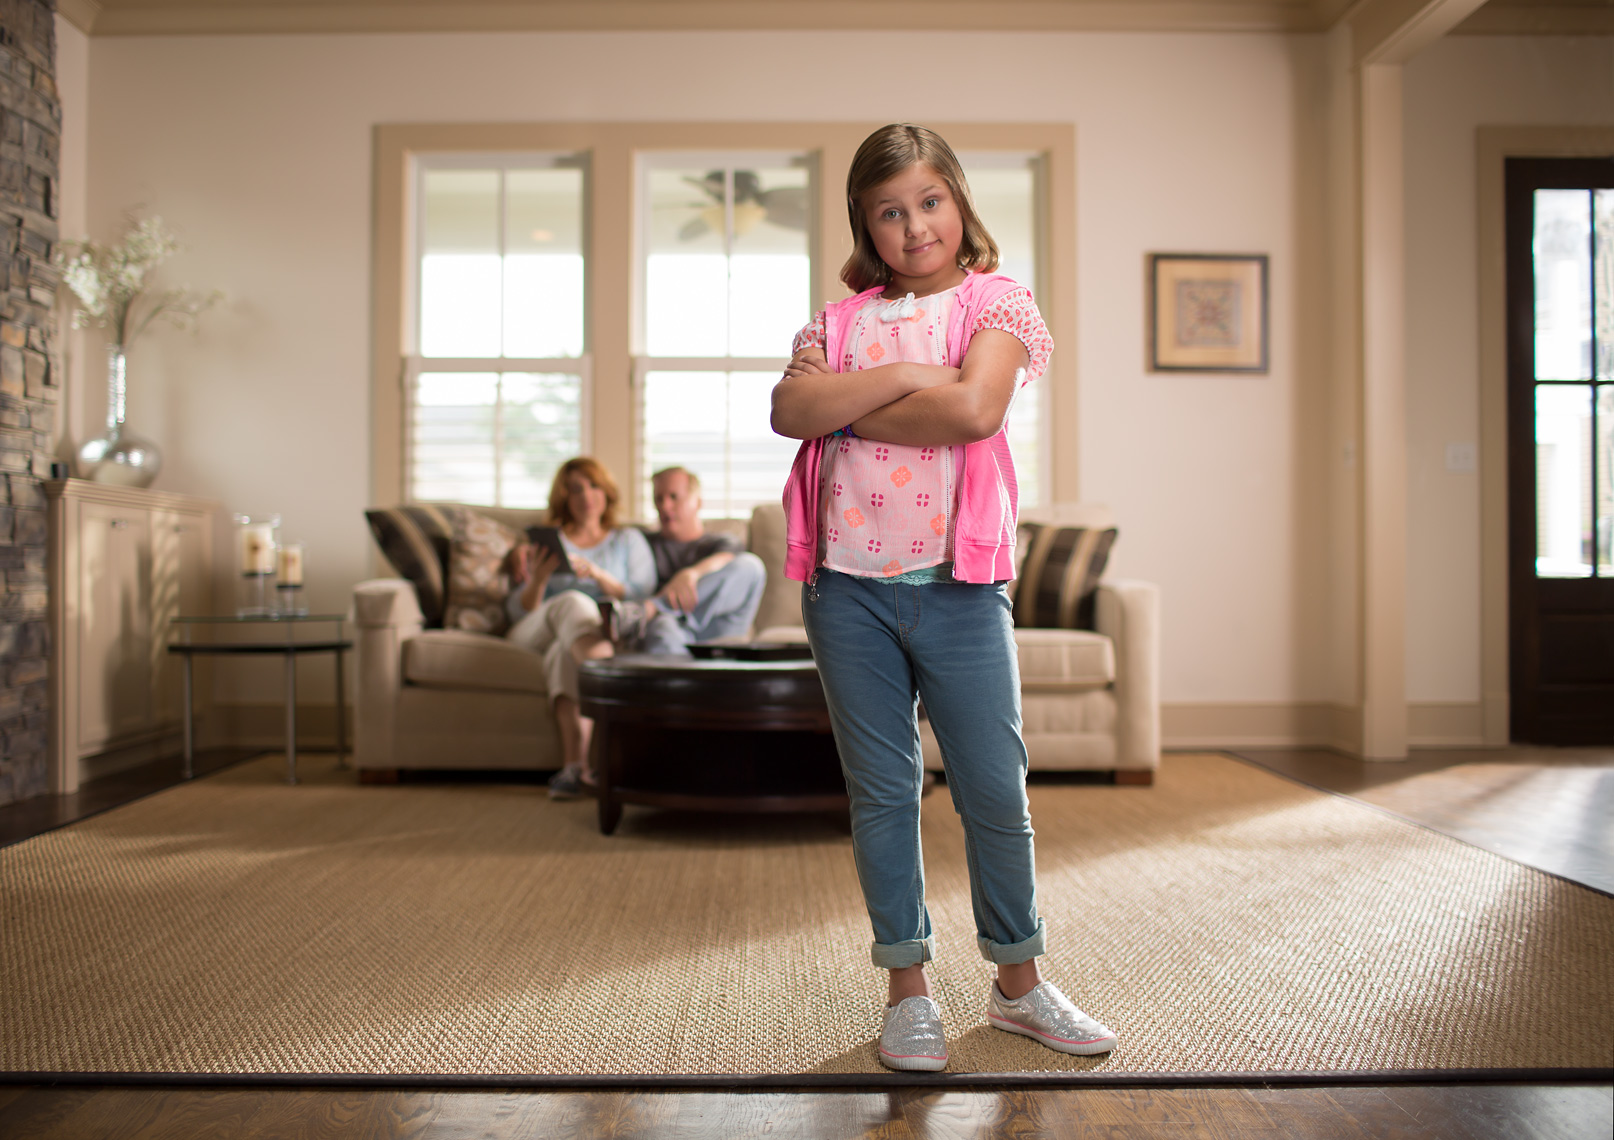 Kid in Living Room with Parents in Background